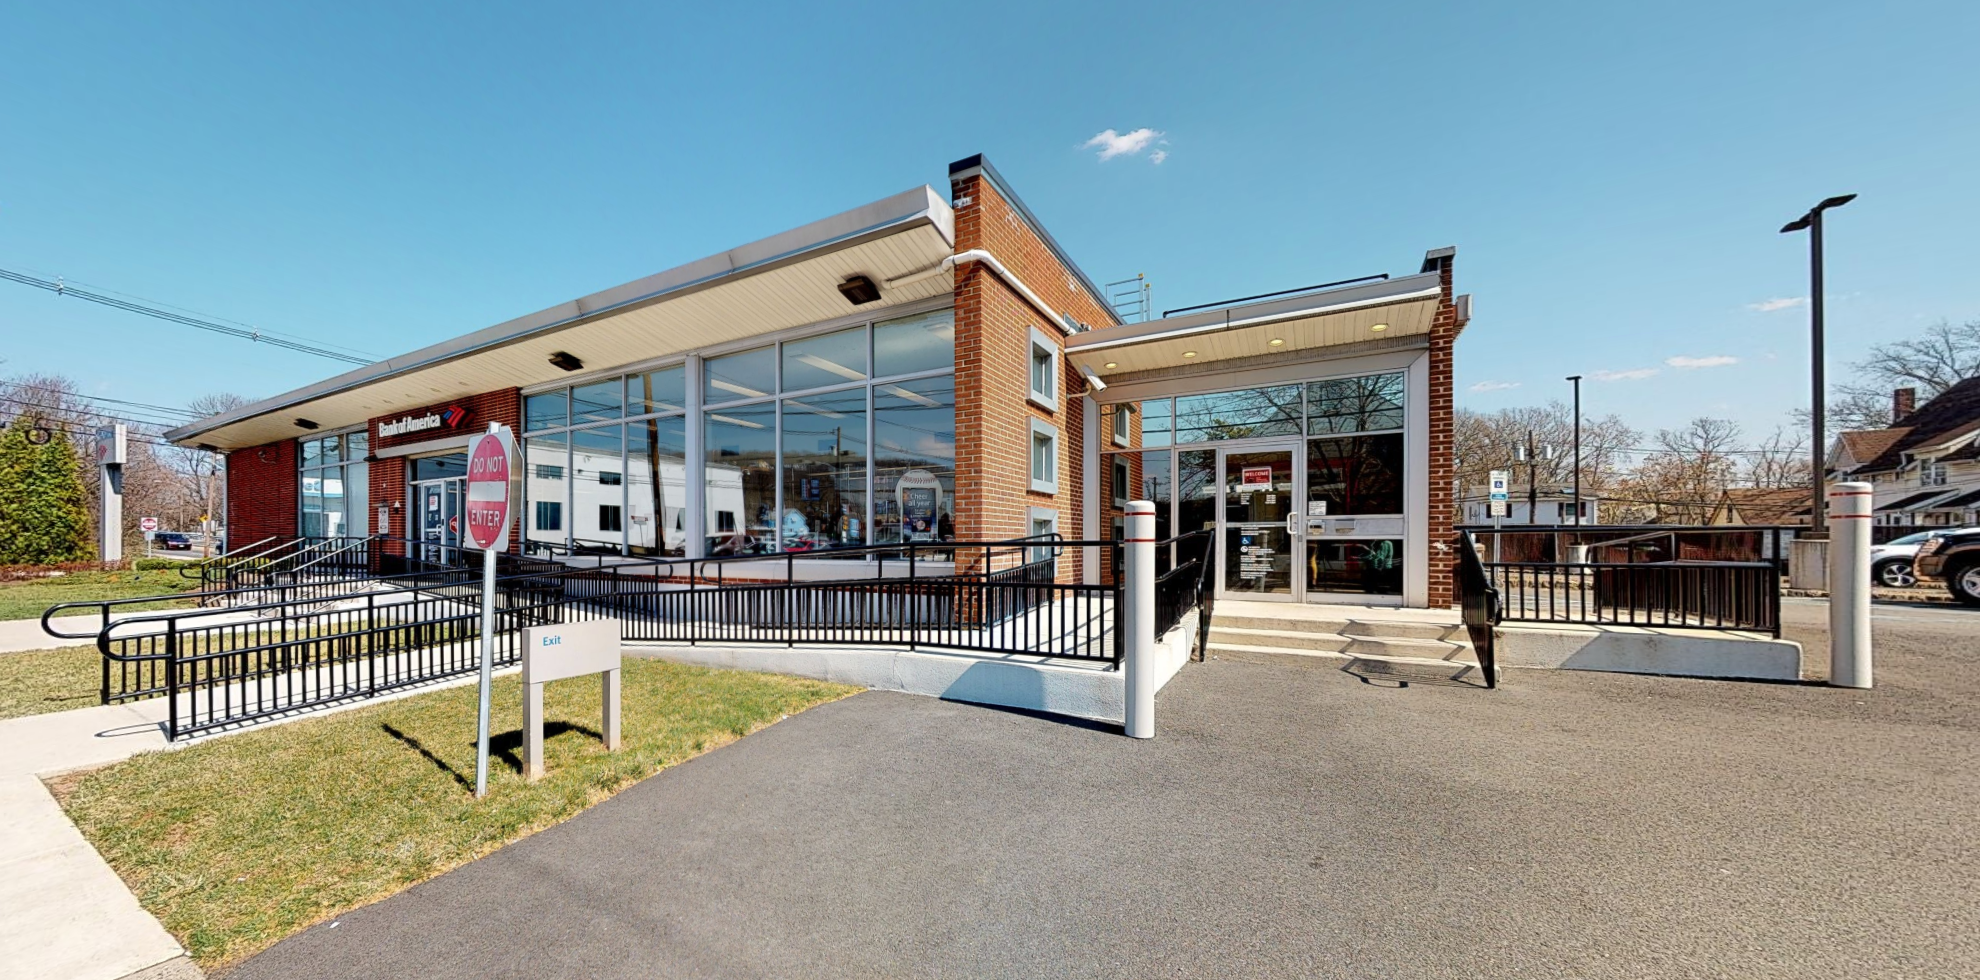 Bank of America financial center with drive-thru ATM   535 Somerset St, North Plainfield, NJ 07060